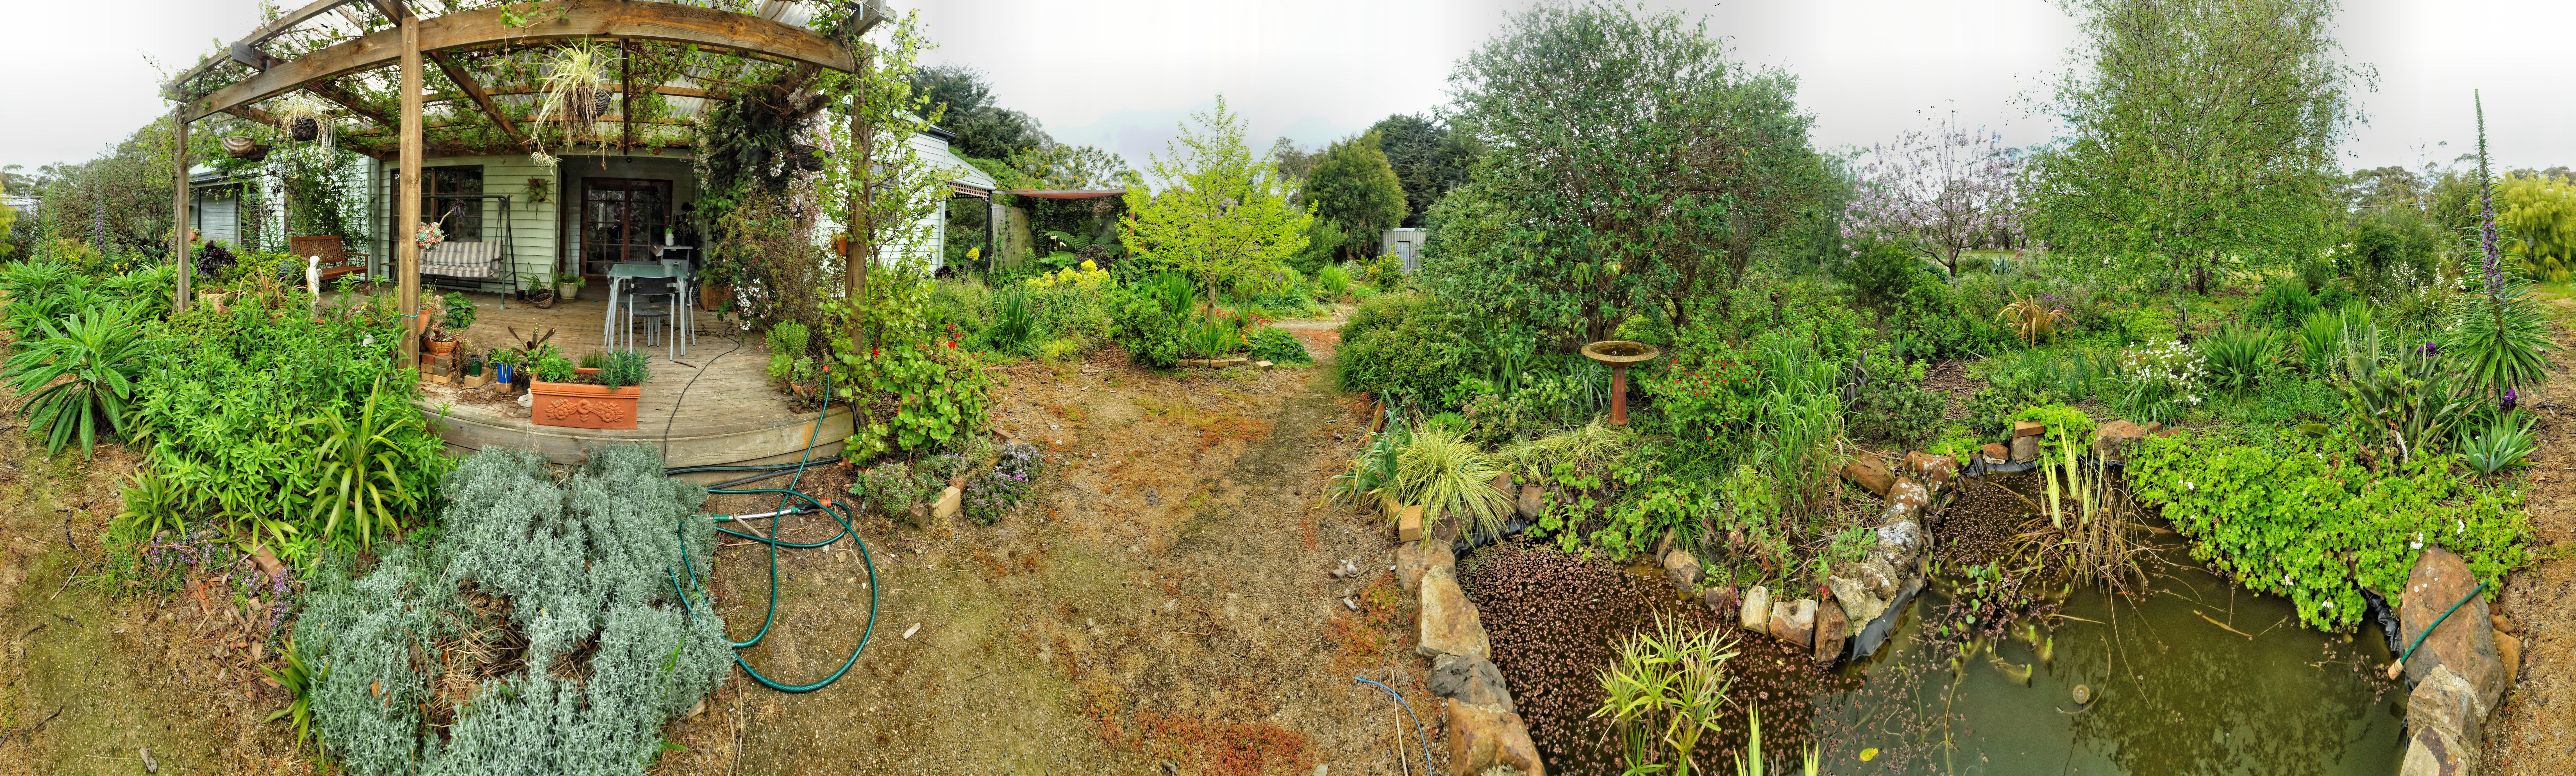 garden-path-centre.jpeg